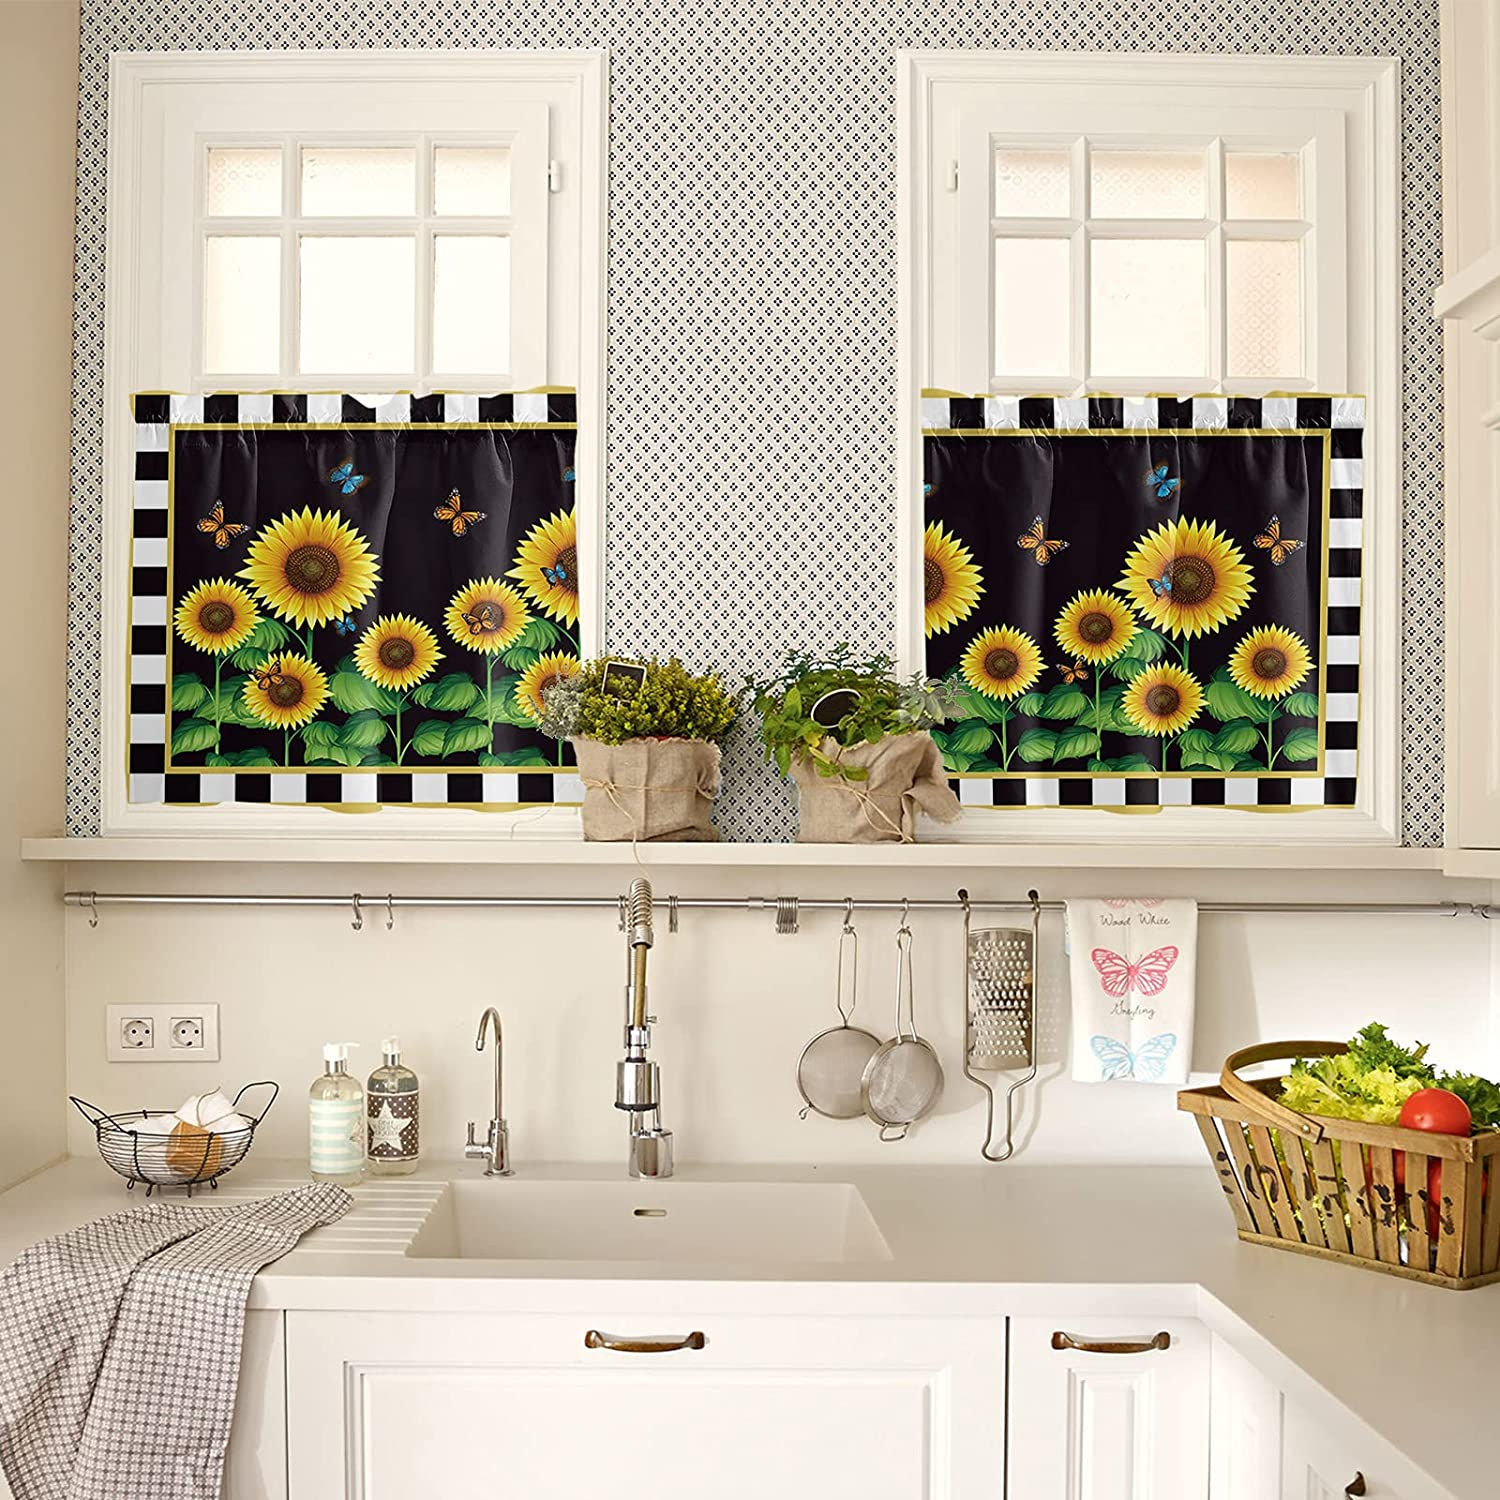 Black and White Checker Grid Kitchen Curtains 36 Inch Length for